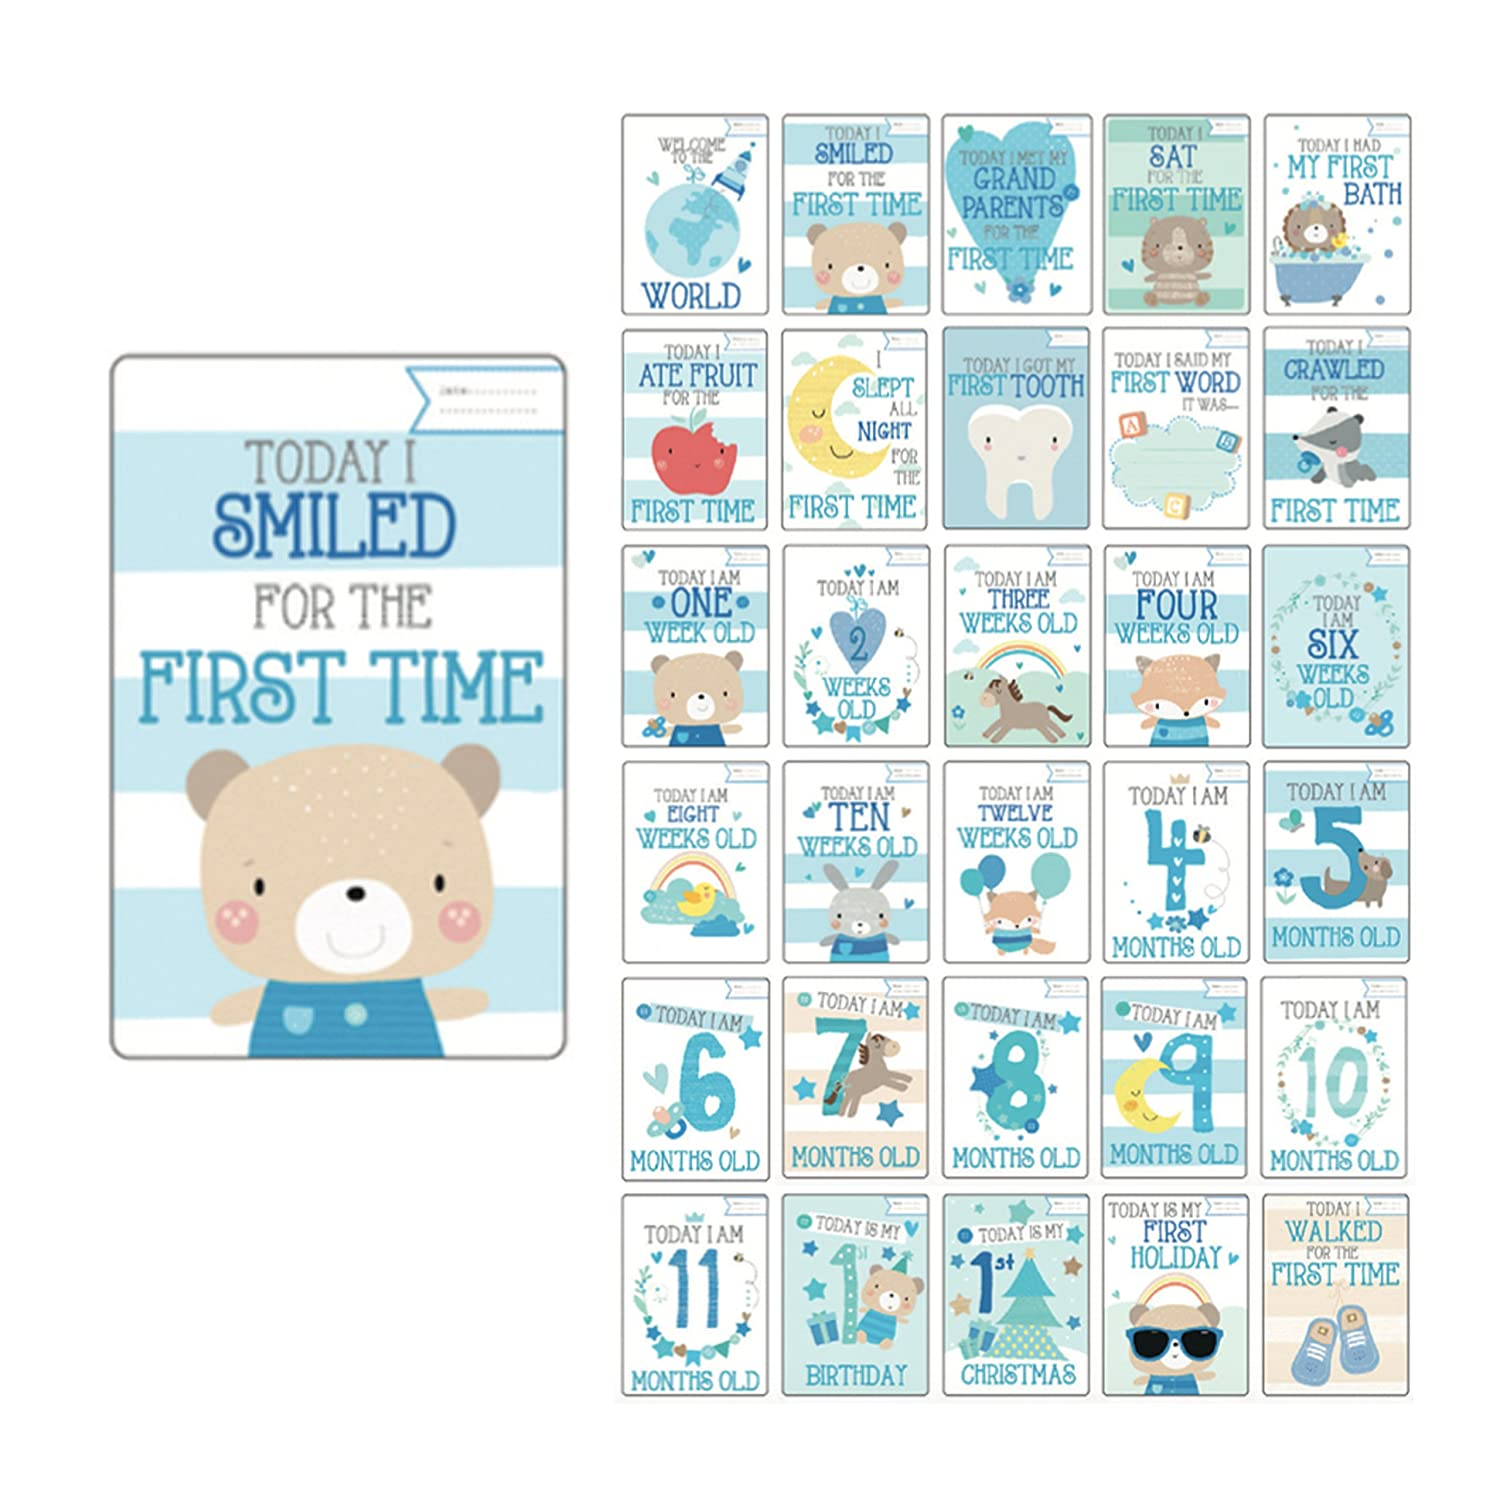 Baby milestone cards uk boy baby shower gifts boy new baby boy baby milestone cards uk boy baby shower gifts boy new baby boy gifts amazon baby negle